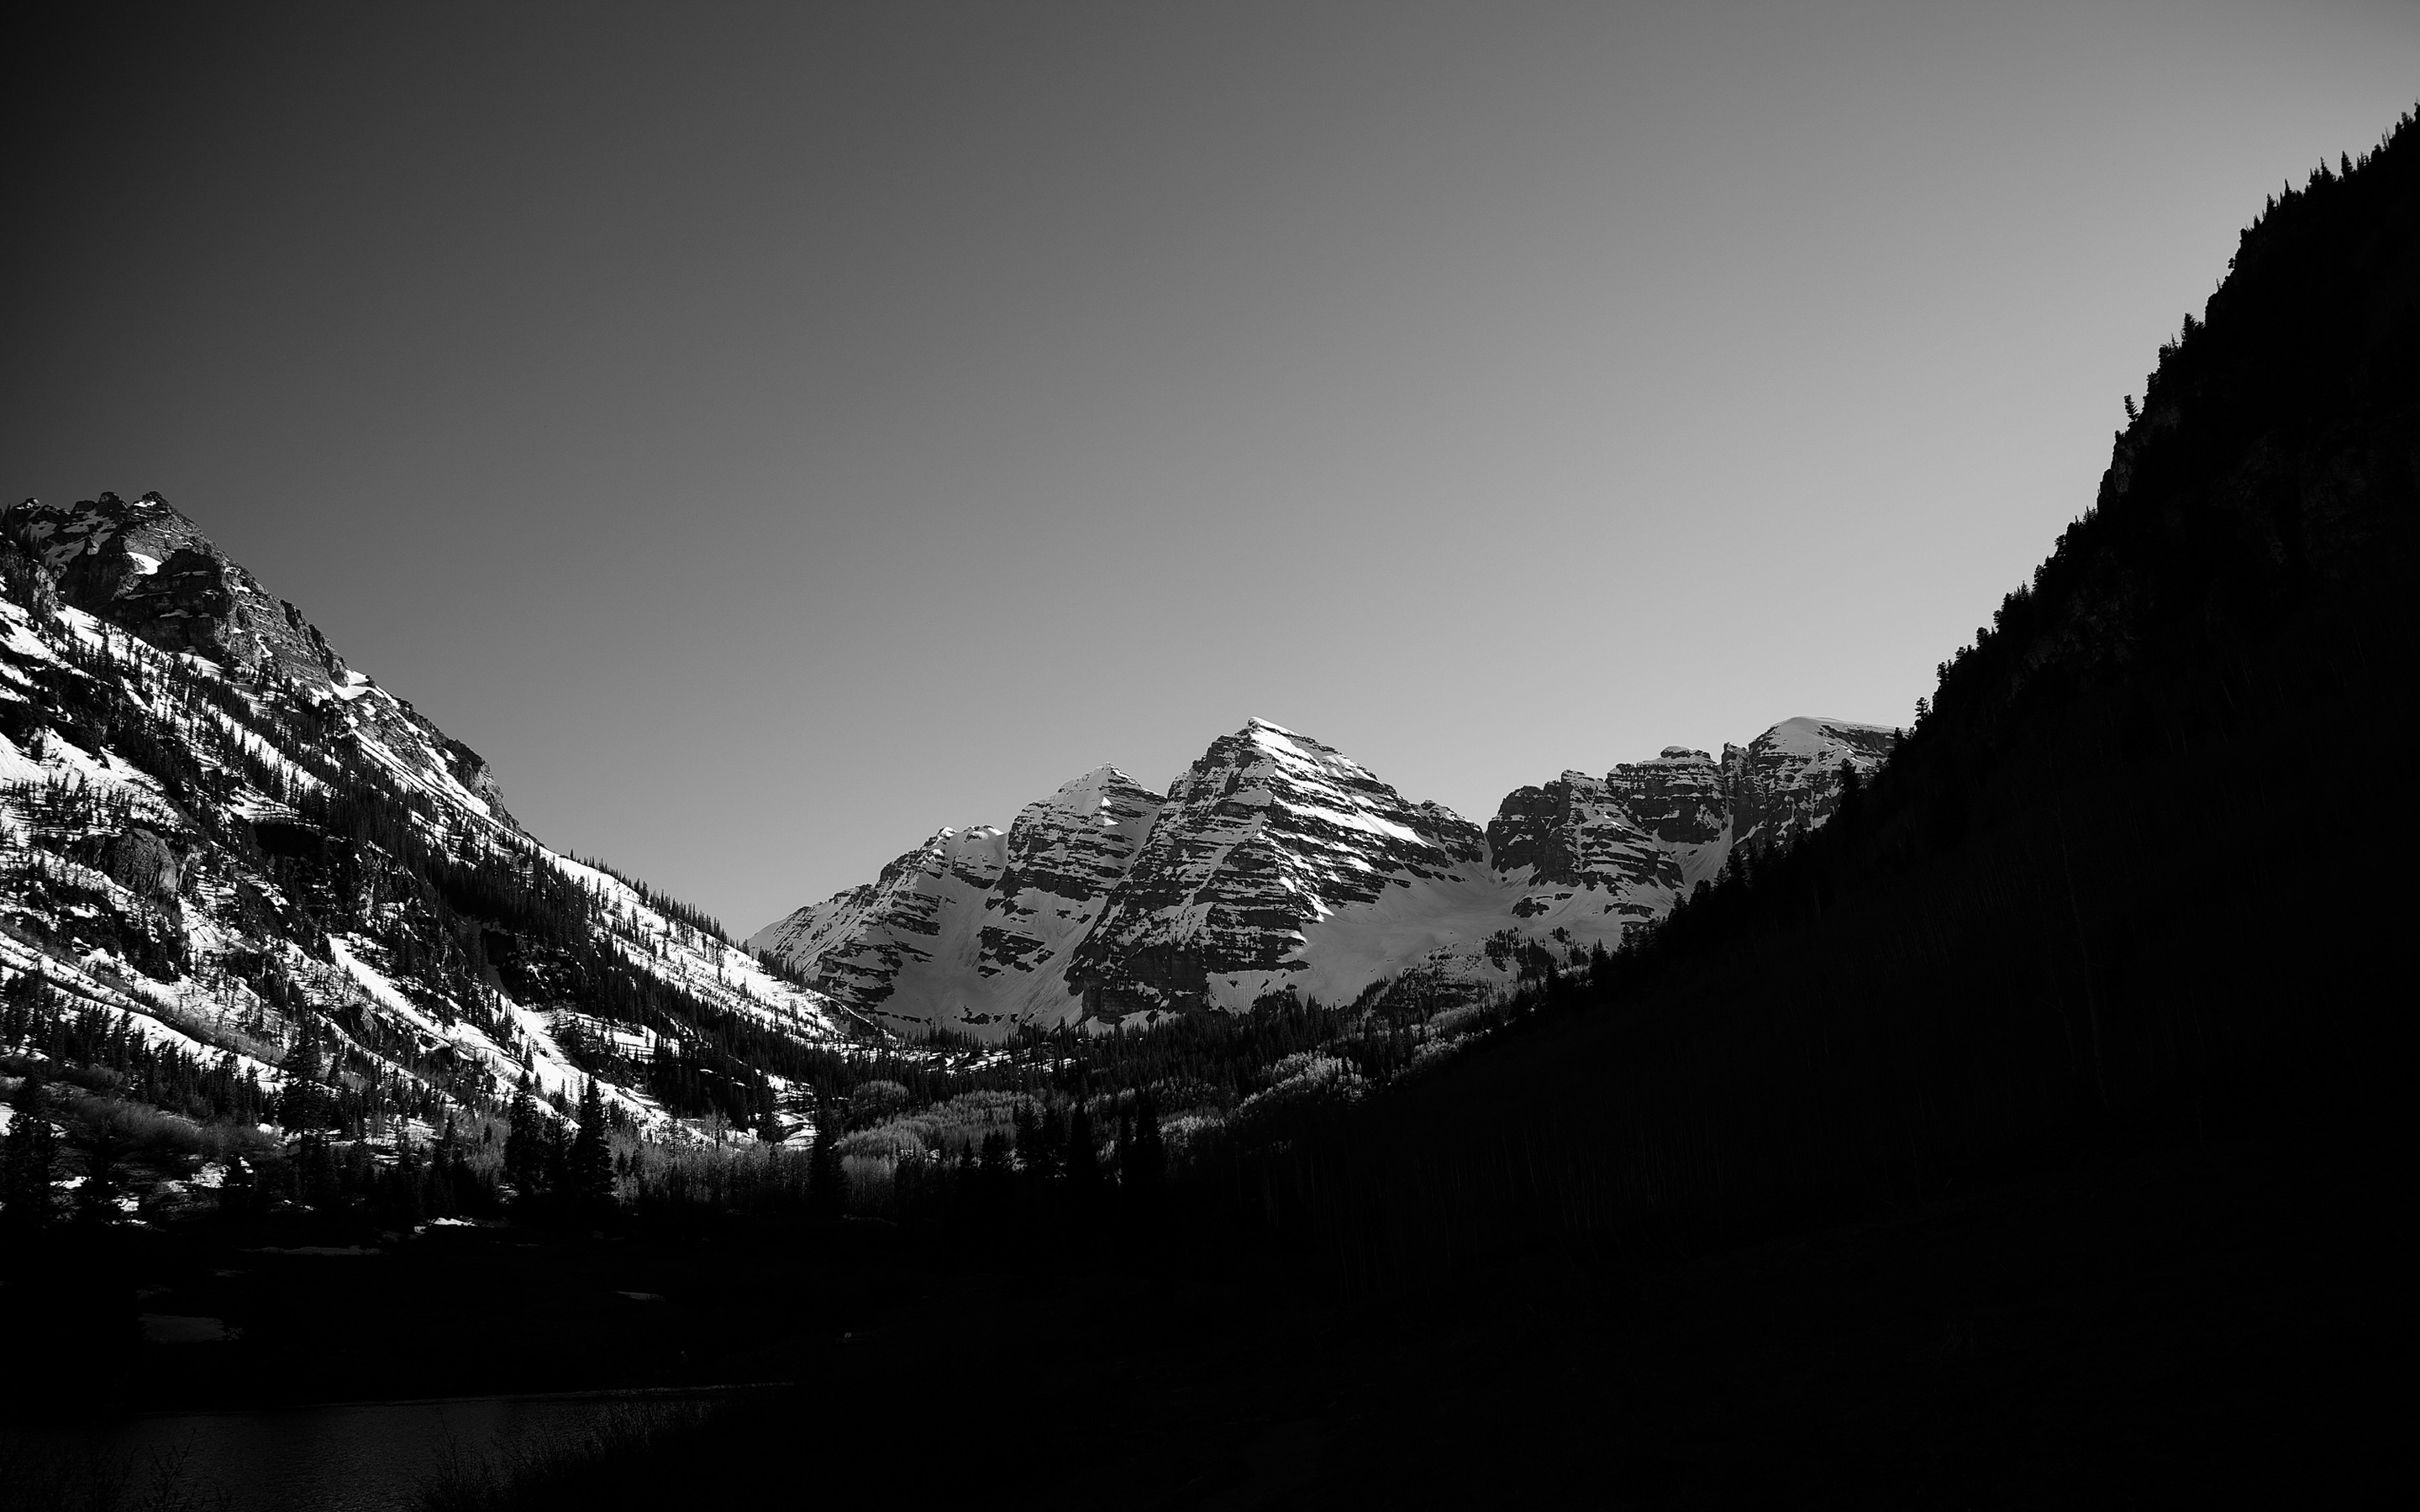 https://eskipaper.com/images/monochrome-forest-mountains-scenery-1.jpg |  Nature | Pinterest | Mountain wallpaper, Mountains and Wallpaper